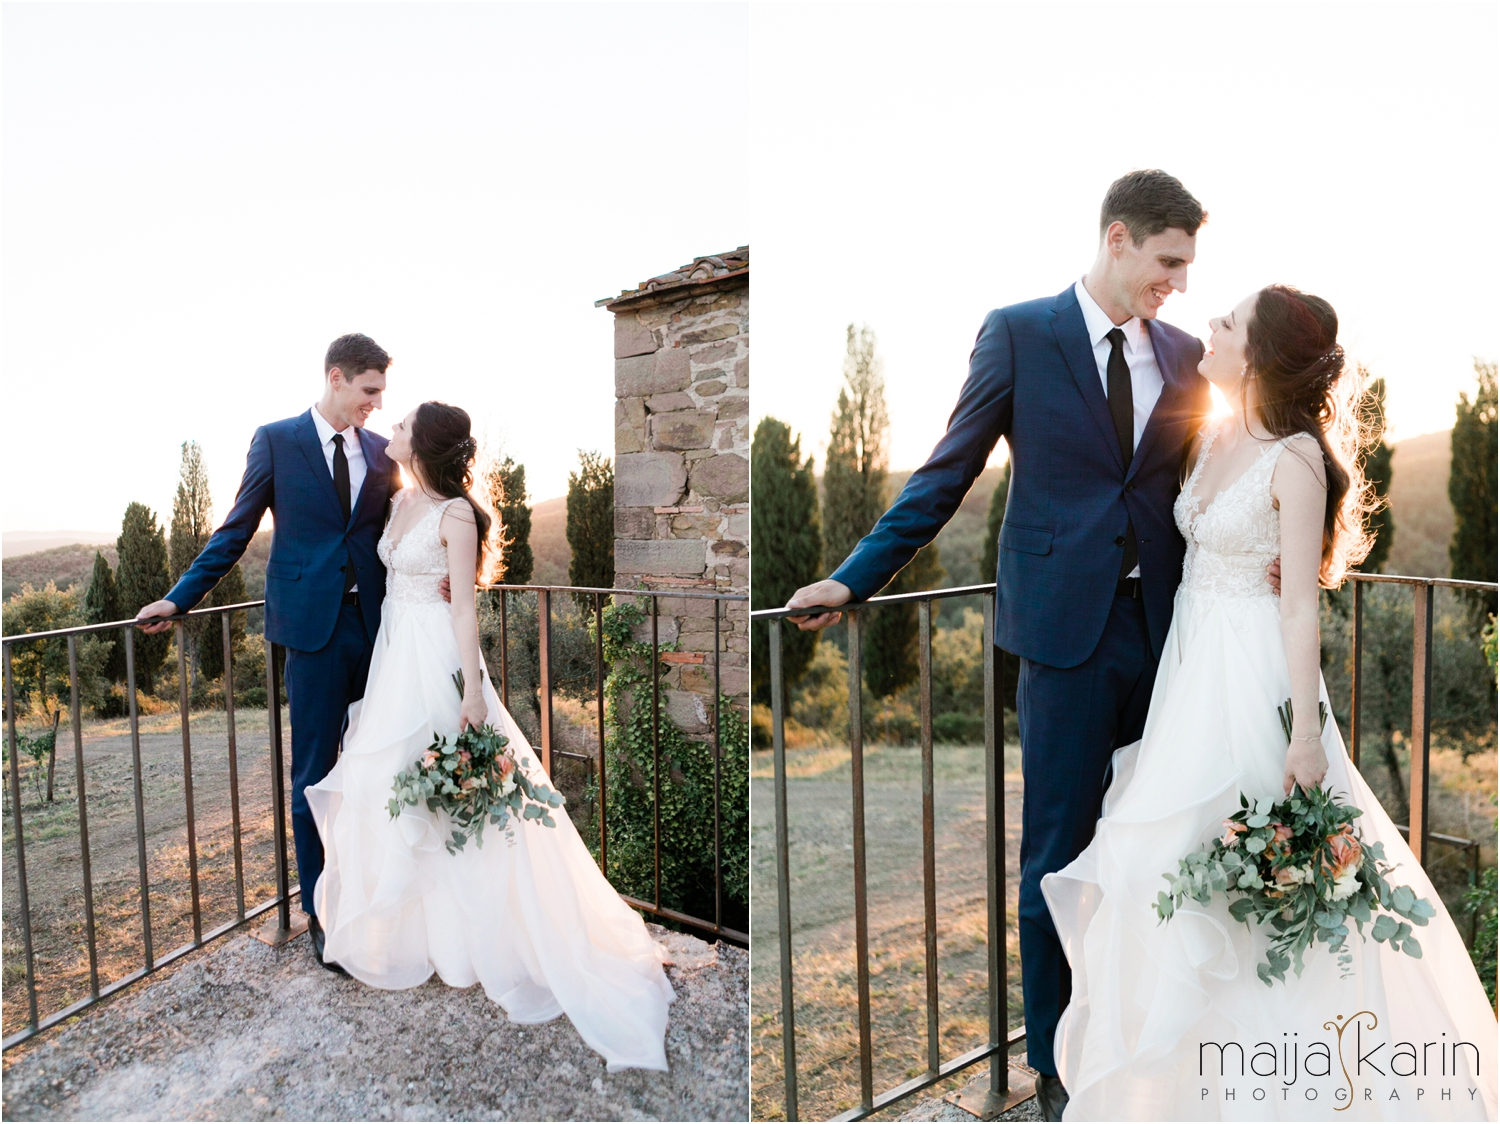 Castelvecchi-Tuscany-Wedding-Maija-Karin-Photography_0058.jpg